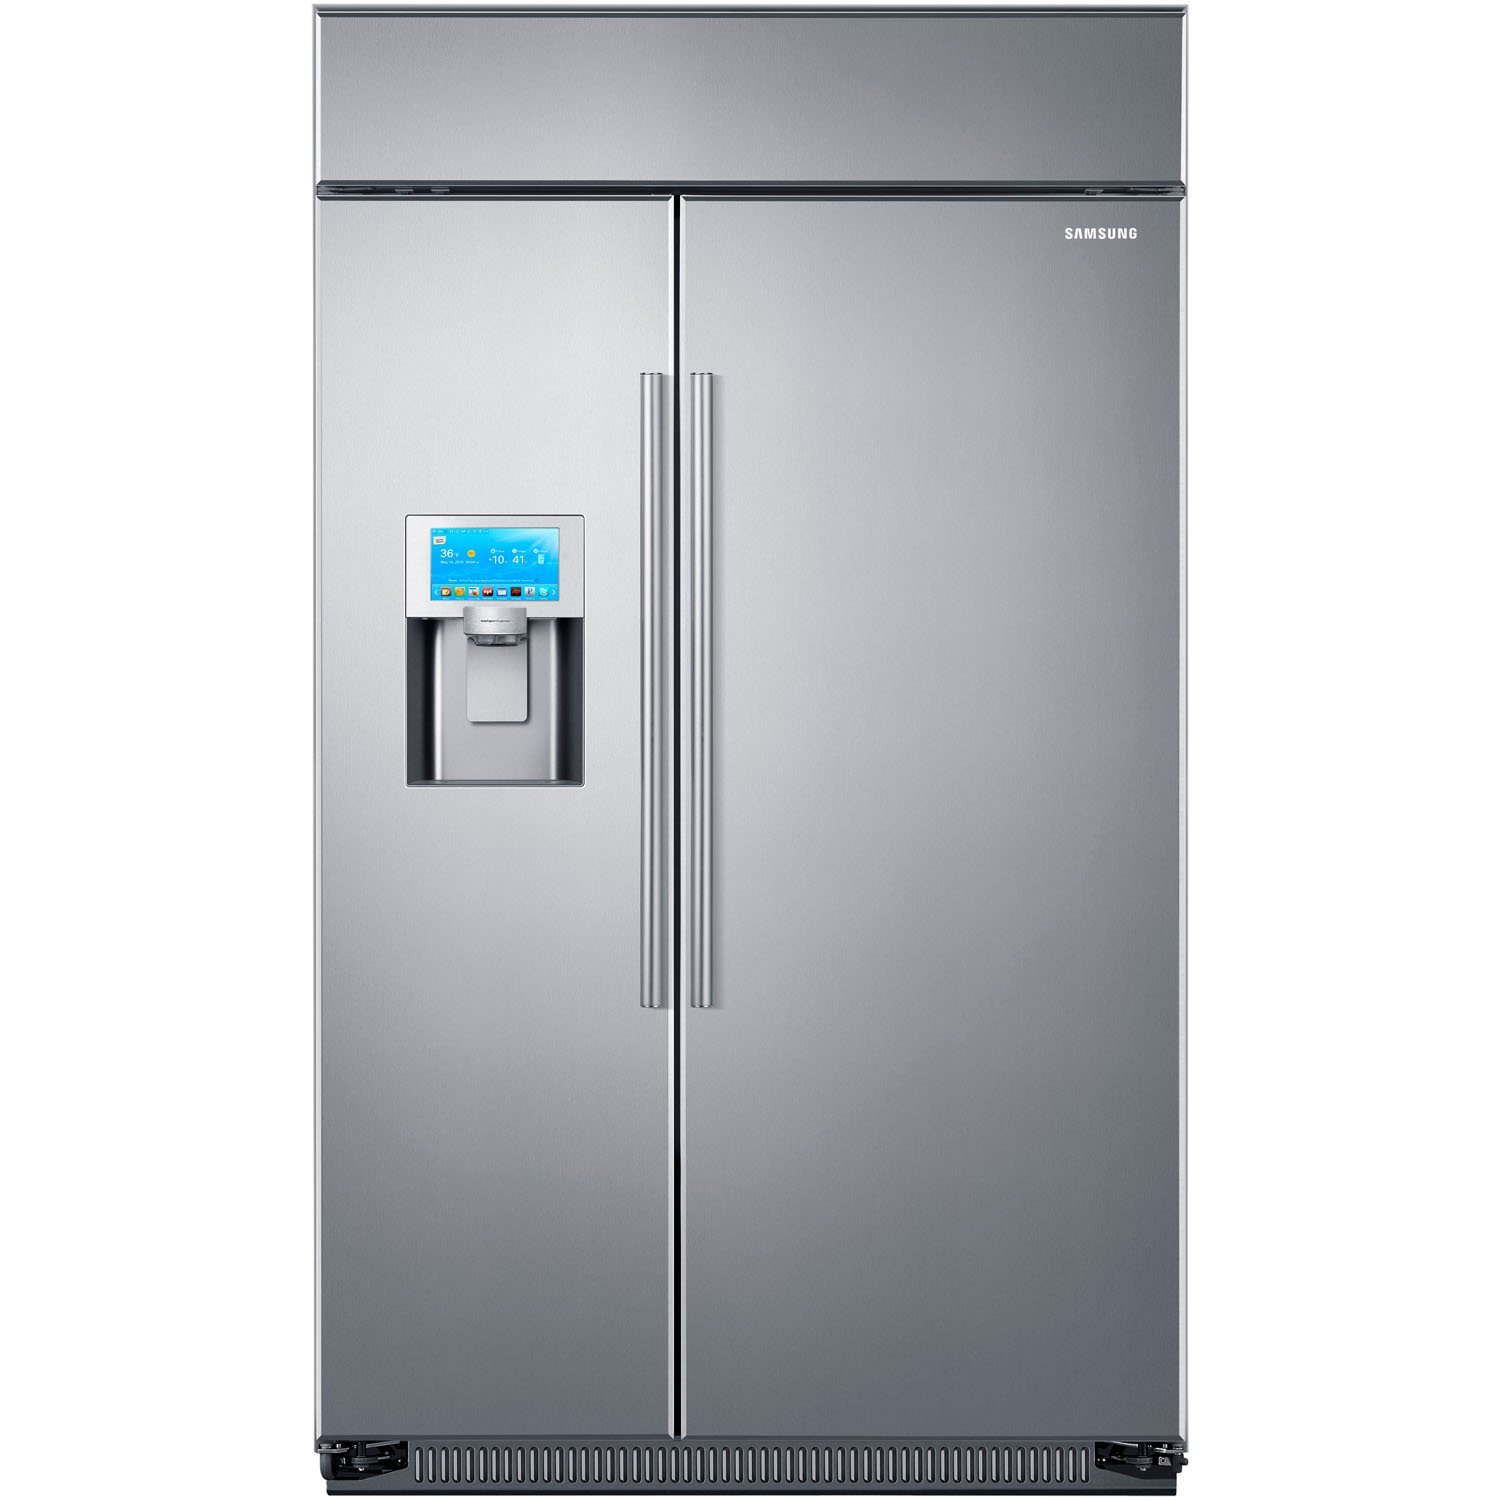 Commercial refrigerator for home use - Amazon Com Samsung Rs27fdbtnsr Built In Side By Side Refrigerator 48 Inch Stainless Steel Appliances